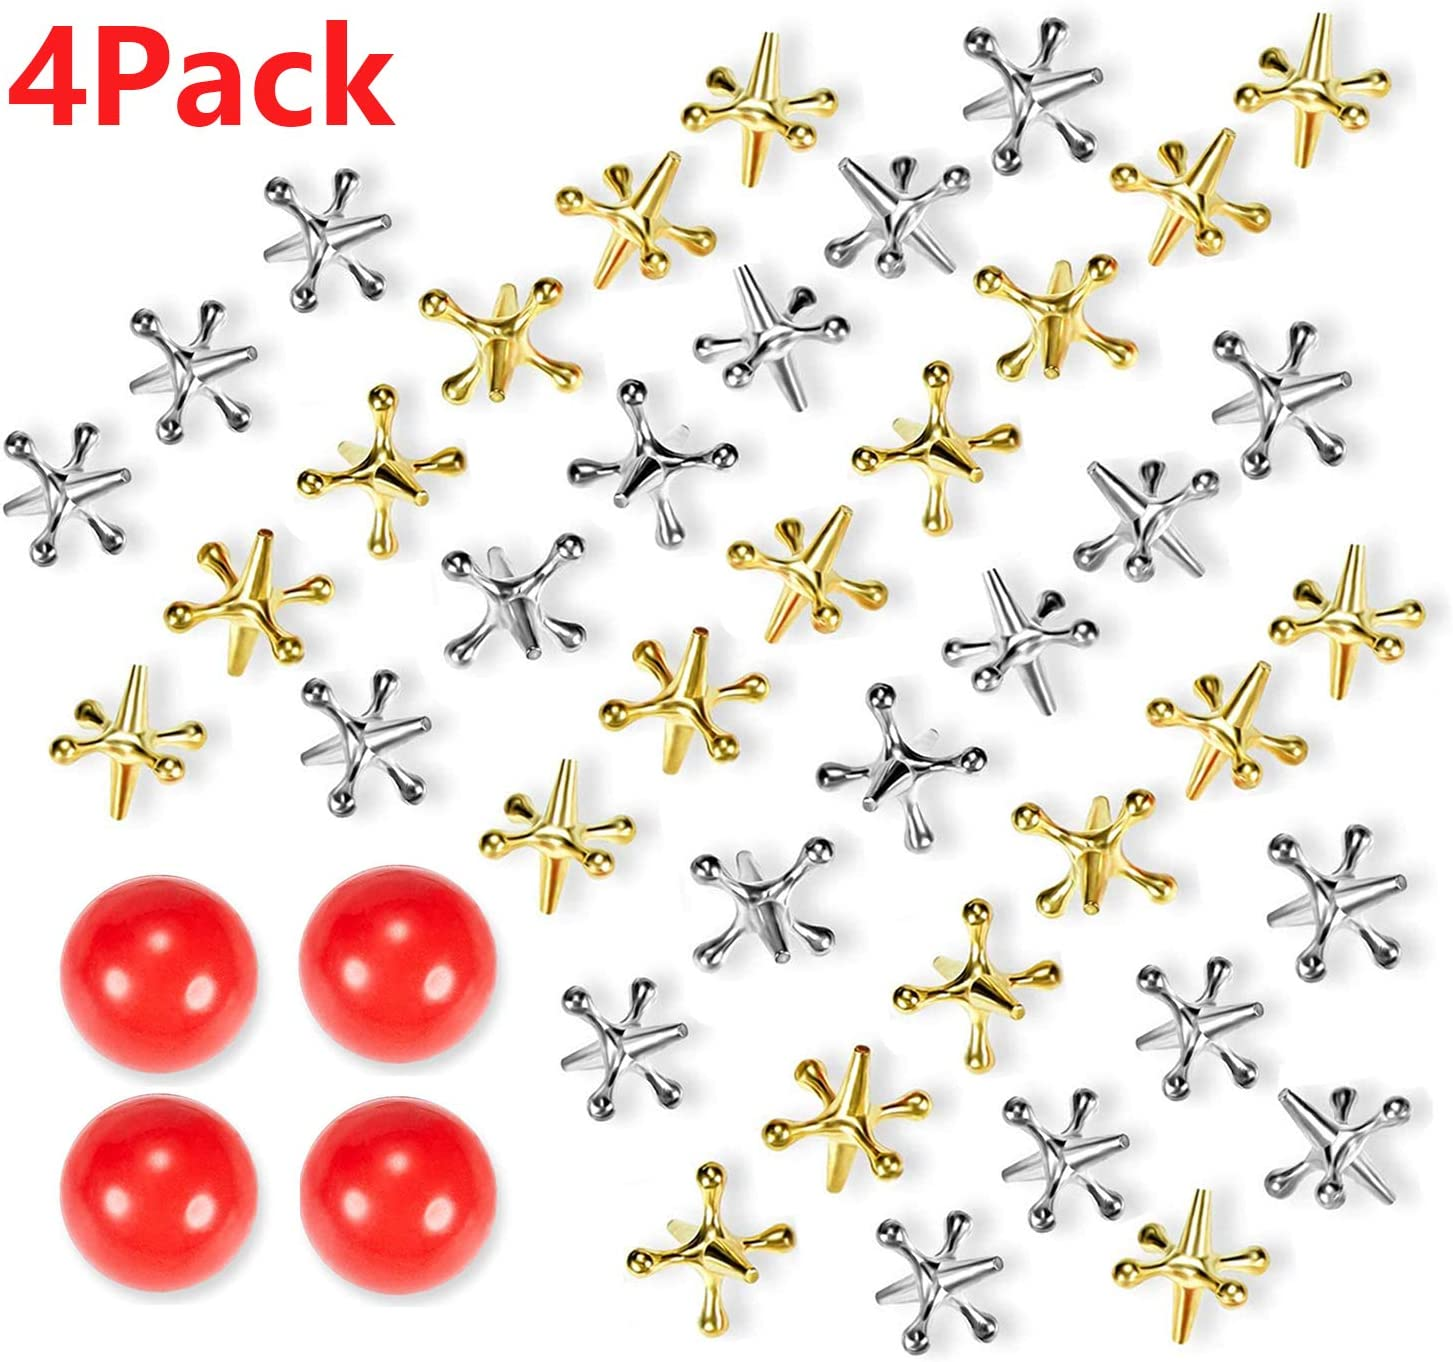 Burstsgle 4 Set Metal Jacks Game Toy Kit Including 40 Pieces Metal Jacks with 4 Red Rubber Bouncy Balls Retro Classic Game of Jacks for Teens and Adults Party